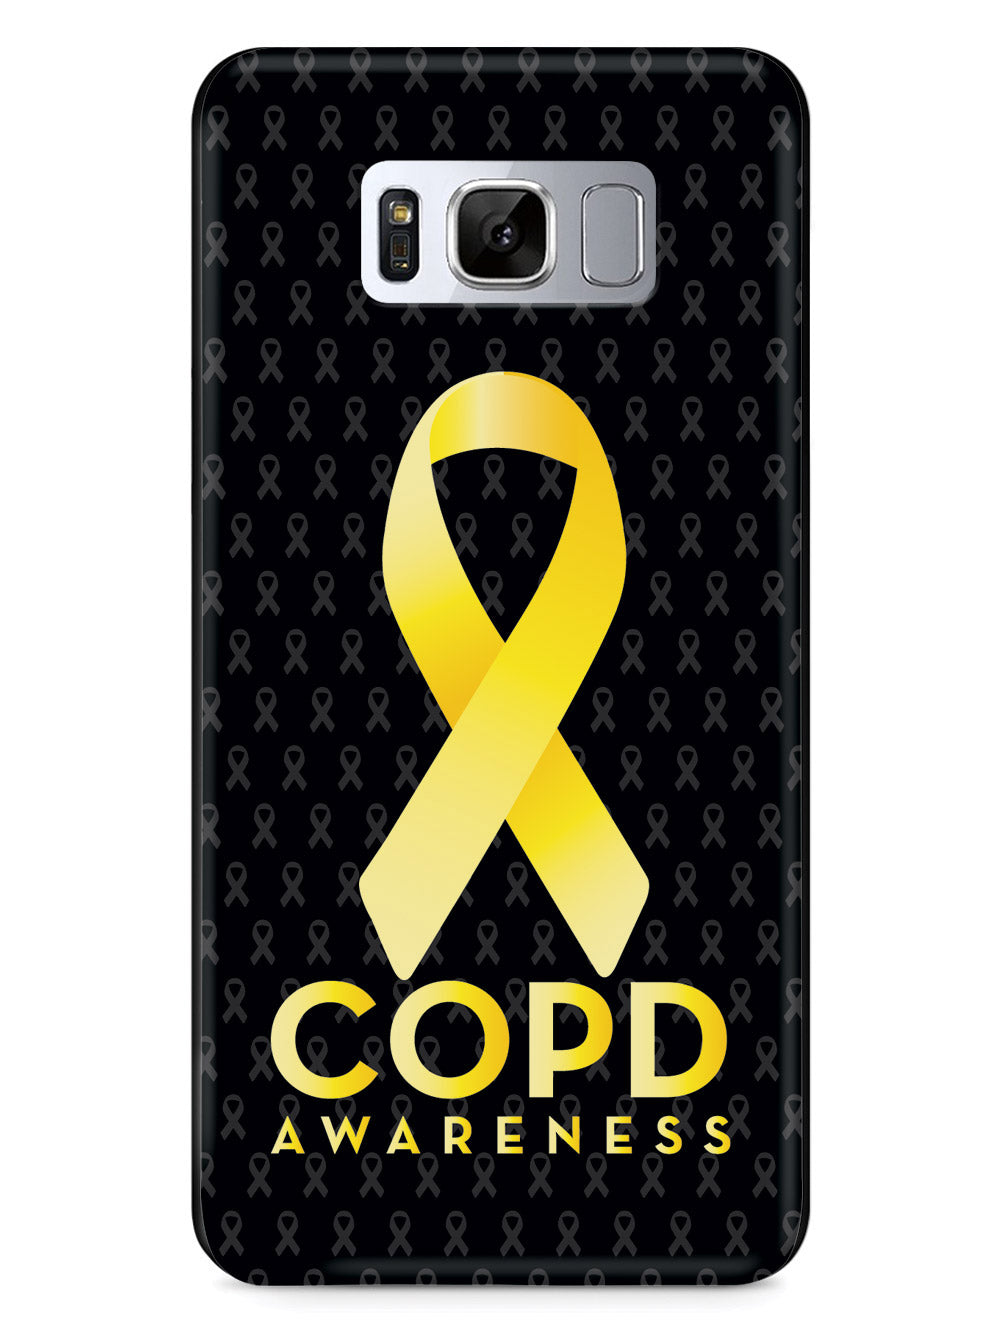 COPD Awareness - Black Case